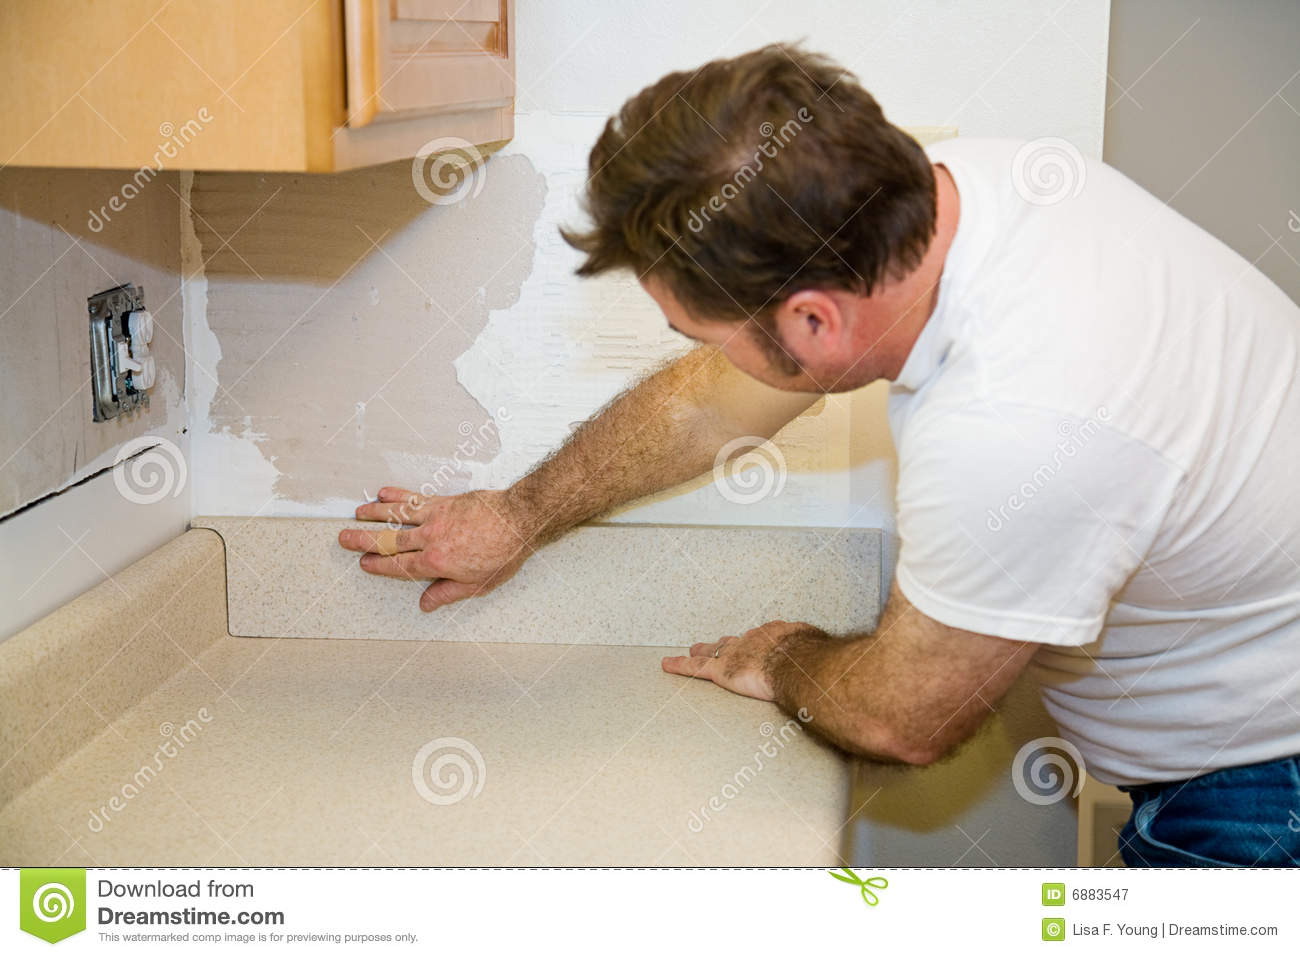 Installing A Countertop Installing Countertop Backsplash Stock Image Image Of Organized